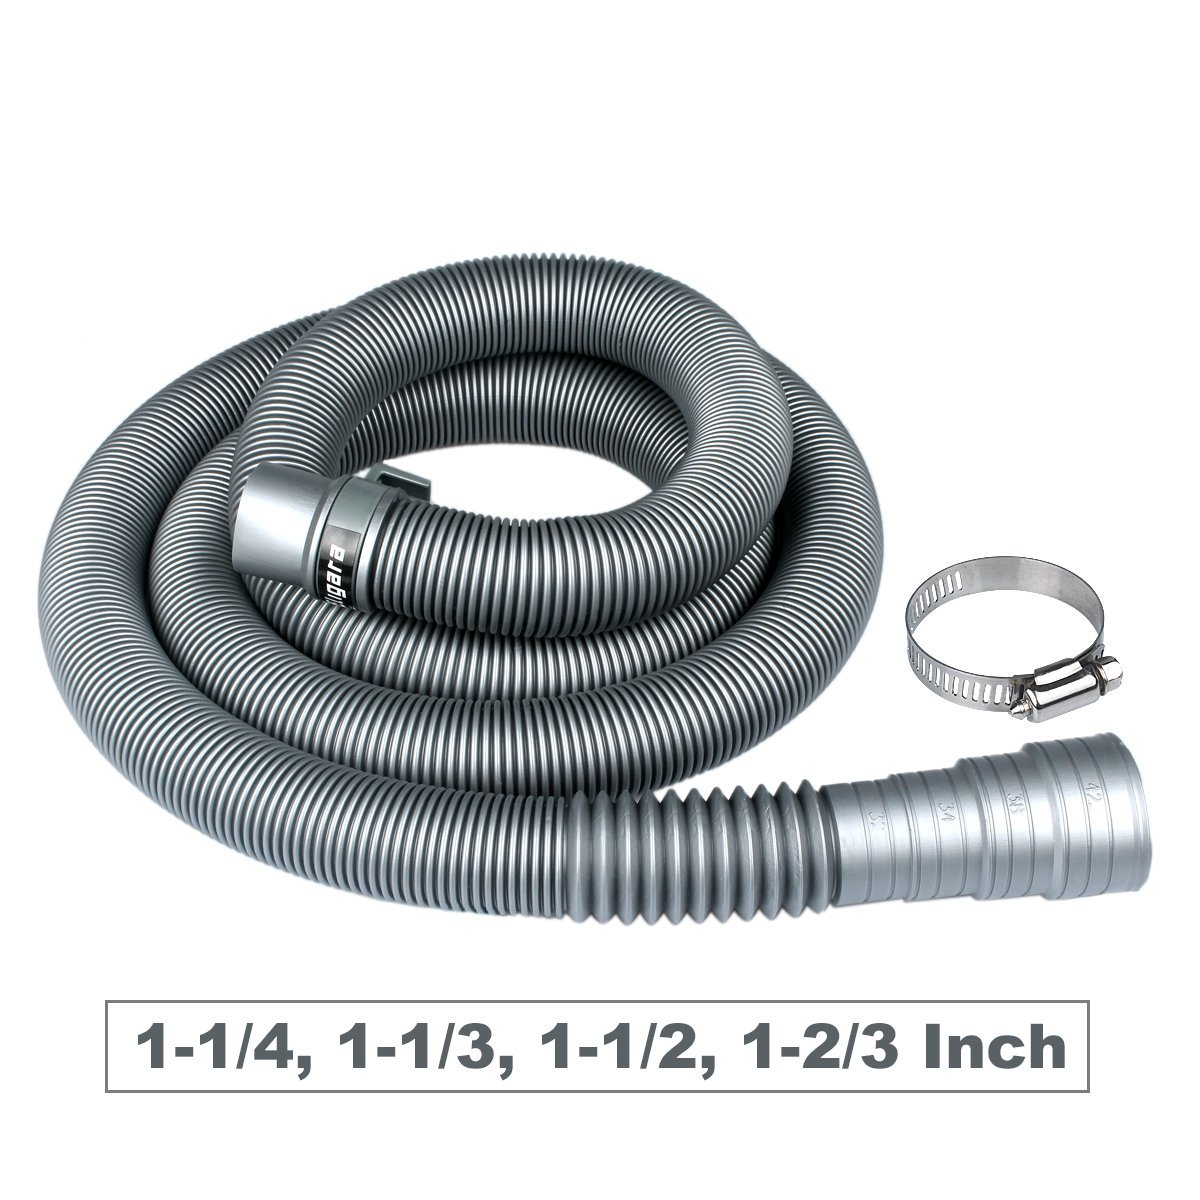 Washing Machine Drain Hose by Eligara | 10 Feet Long Discharge Pipe, Universal Fit All Washer Drain Hose Extension/Replacement Kit (10 Feet)